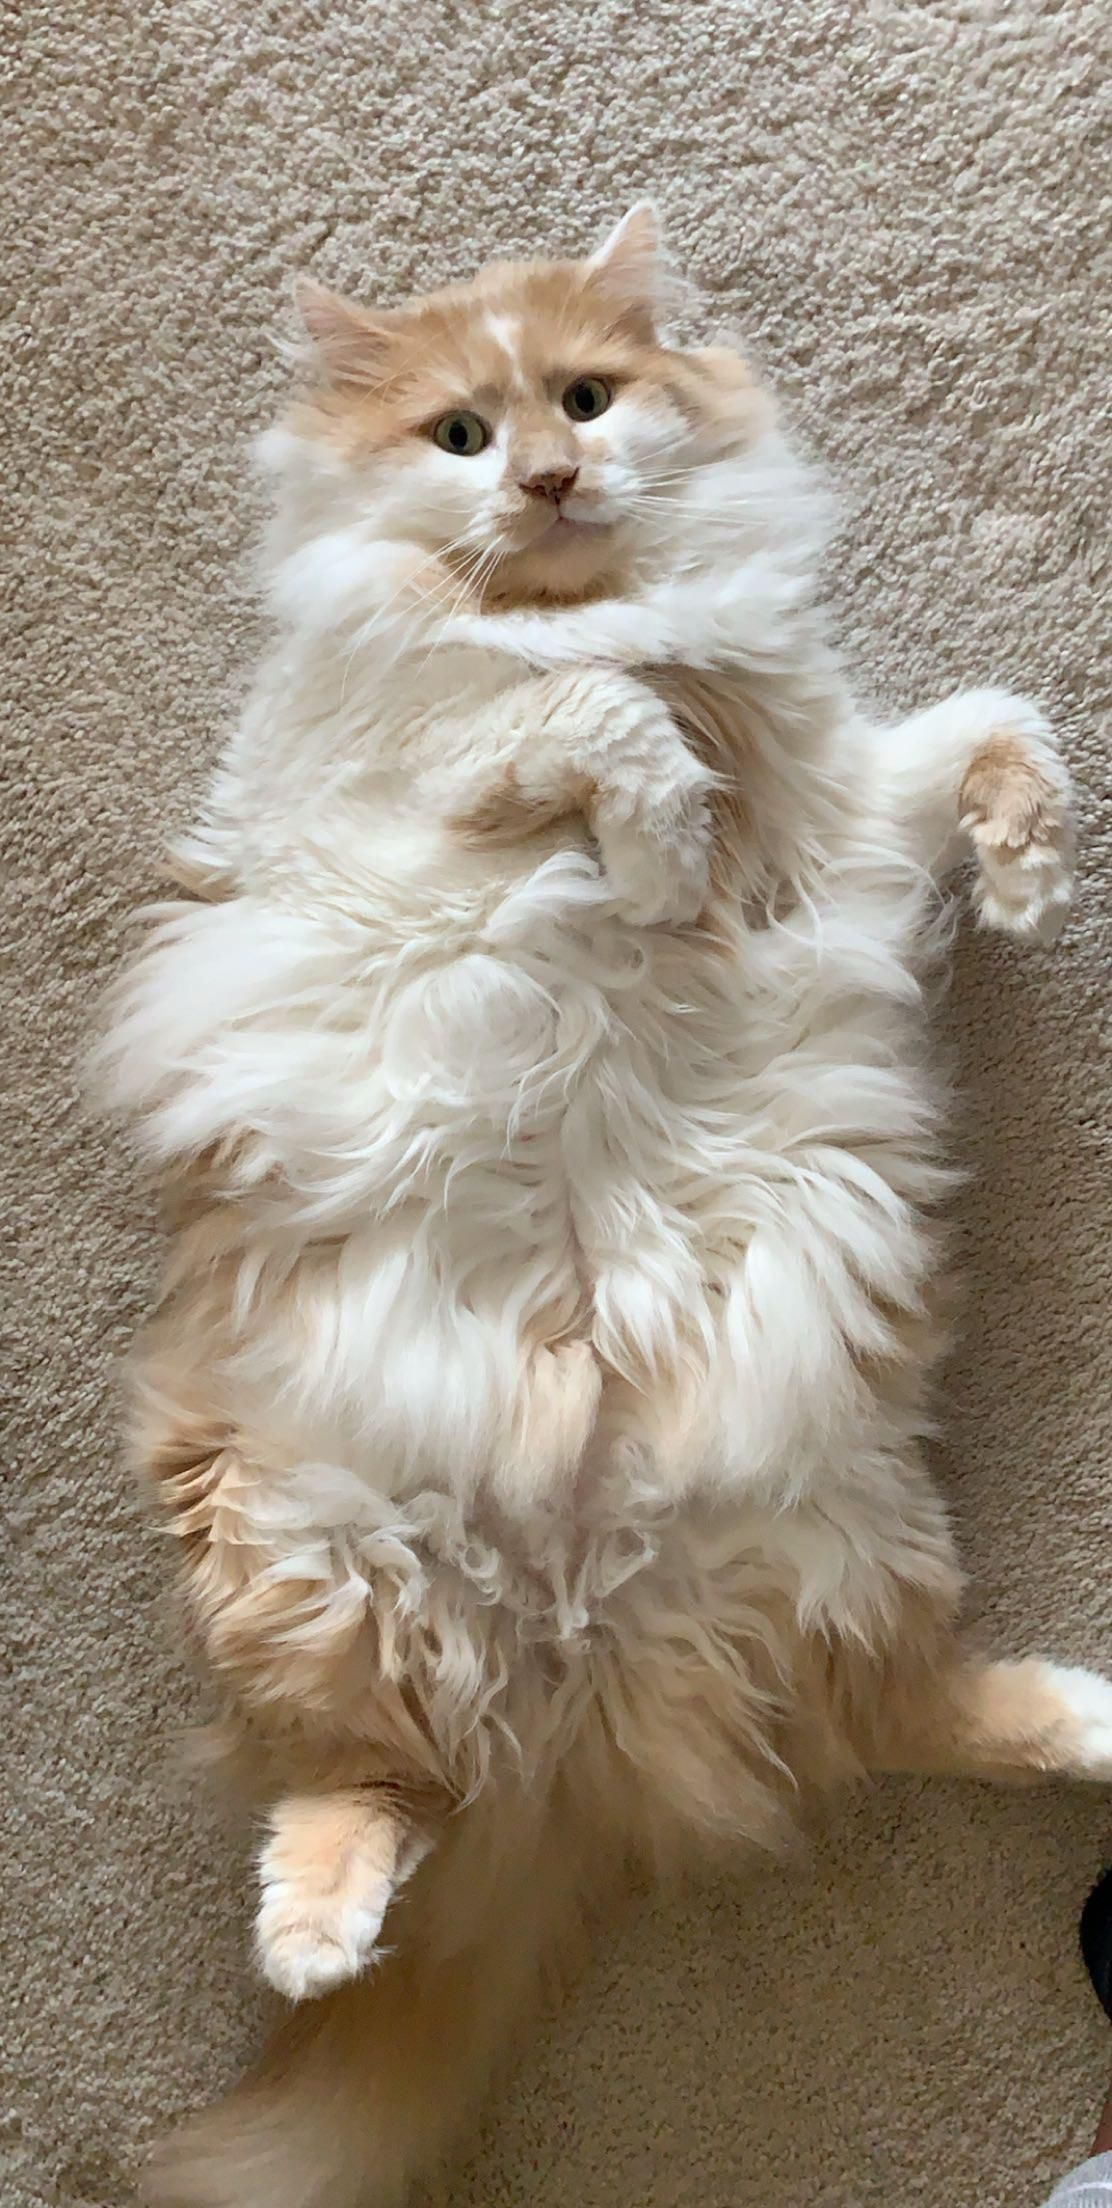 Beautiful Cat Showing Off Her Fluffy Belly Catbelly Curledpaws Catpaws Cutie Baby Cats Kittens Cutest Beautiful Cats